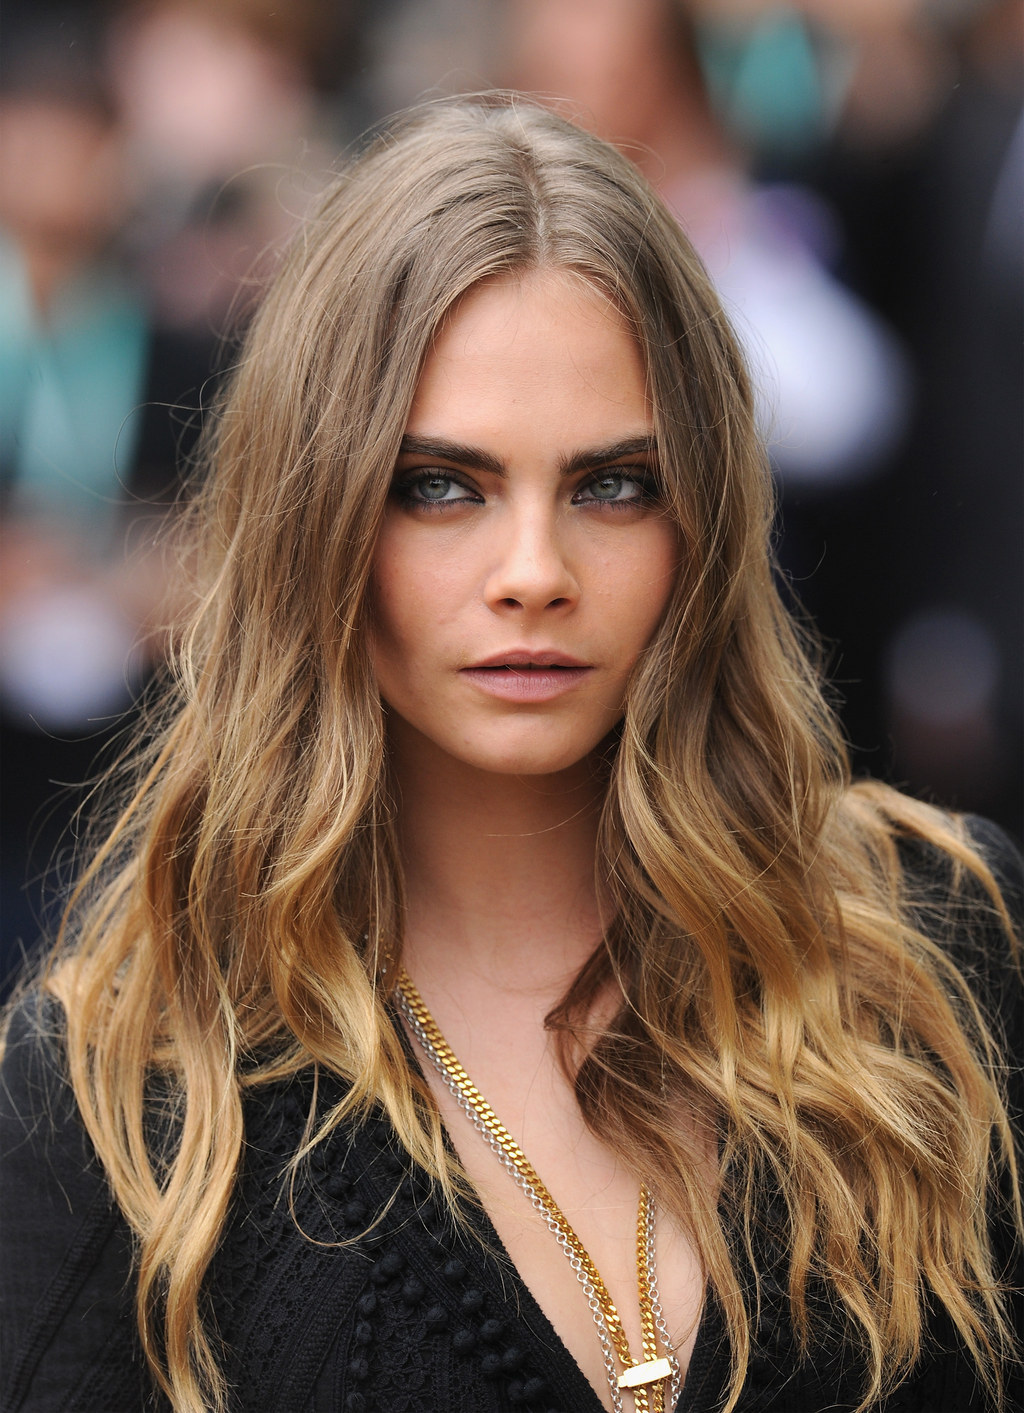 Cara Delevingne Has Opened Up About Living With Mental Illness In A Series Of Tweets